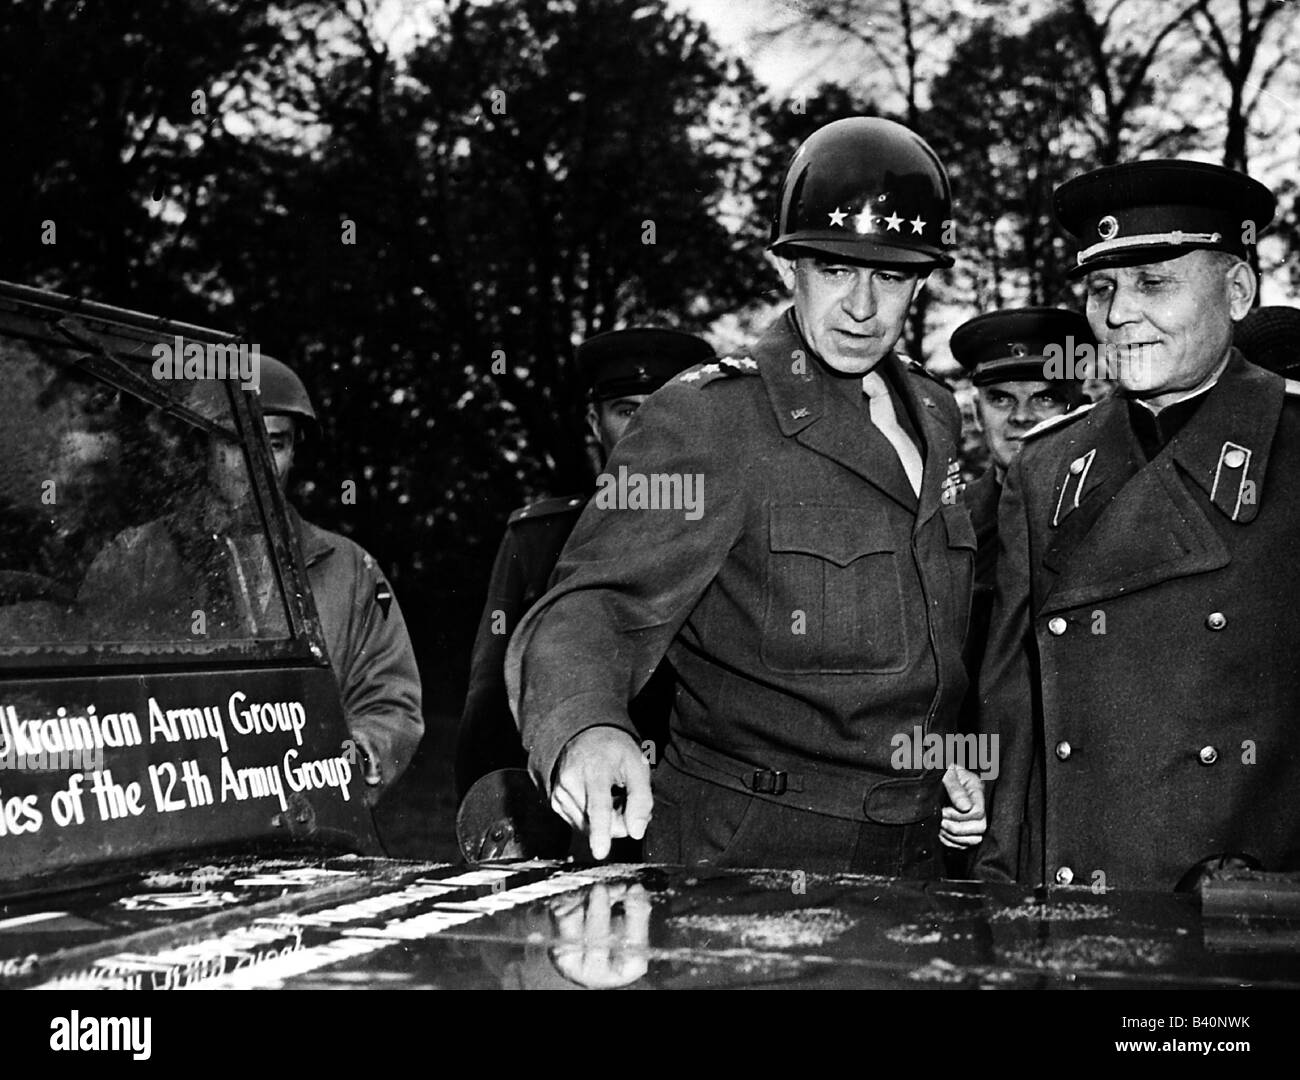 events, Second World War / WWII, Germany, Torgau on the Elbe, meeting of Soviet and American soldiers, US General Stock Photo